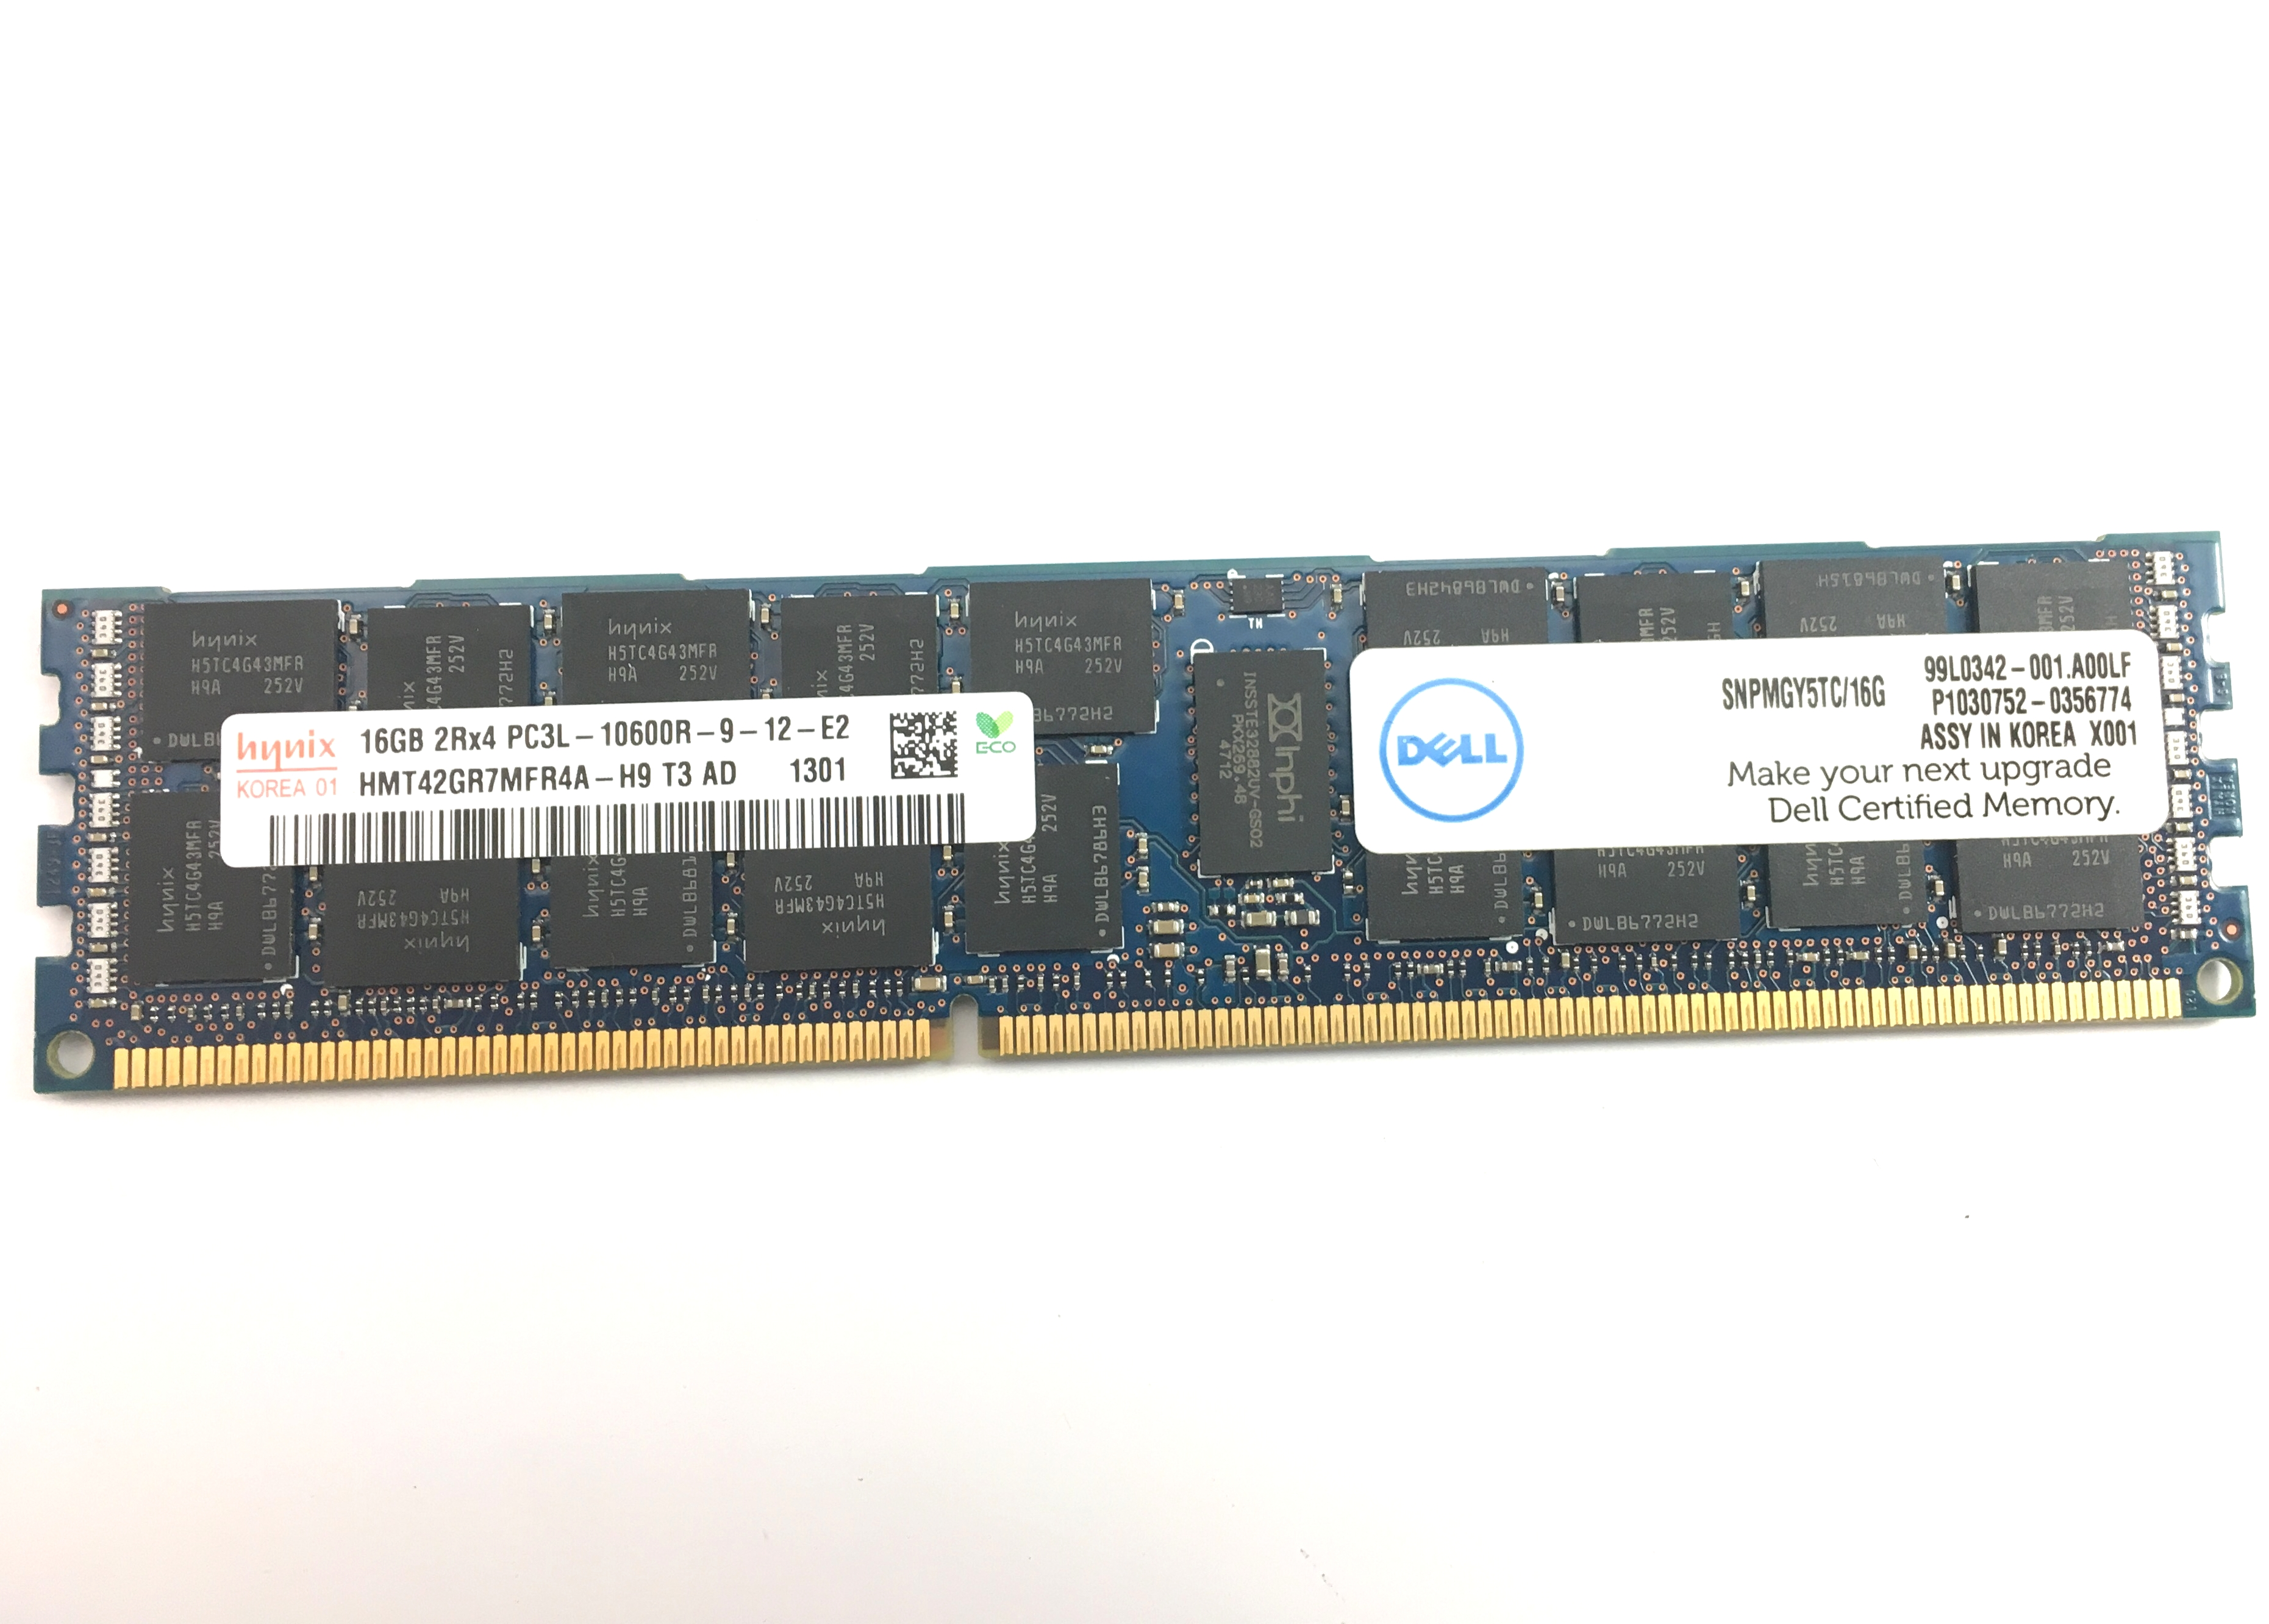 Dell 16GB 2Rx4 PC3L - 10600R DDR3 1333 MHz ECC Registered Memory (SNPMGY5TC/16G)